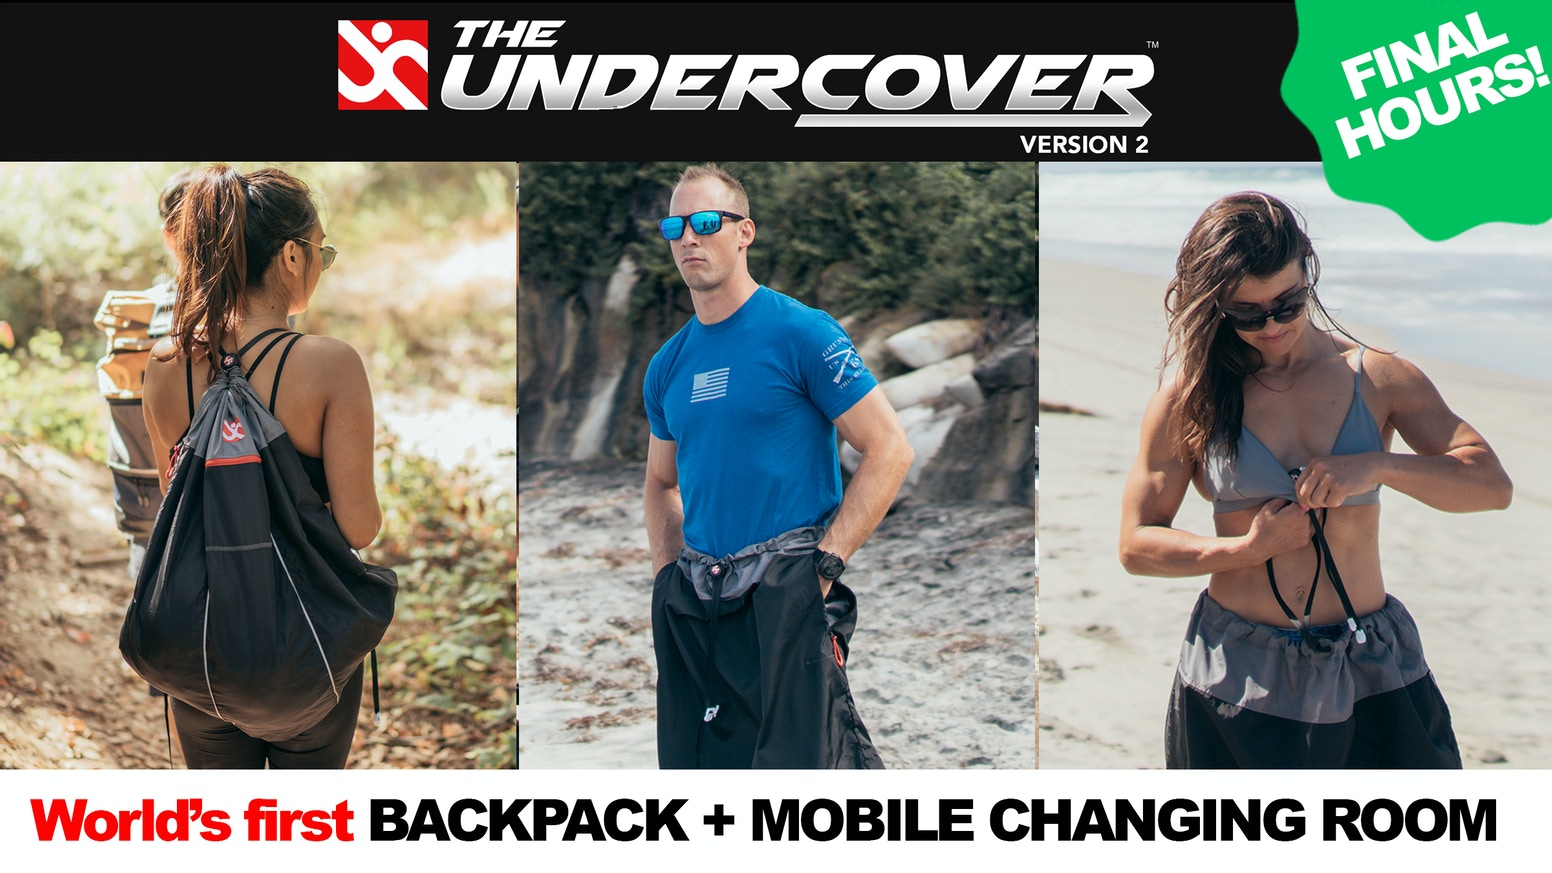 The Undercover - Your Mobile Quick-Changing Room and Backpack all in one.  Never be caught naked, again!